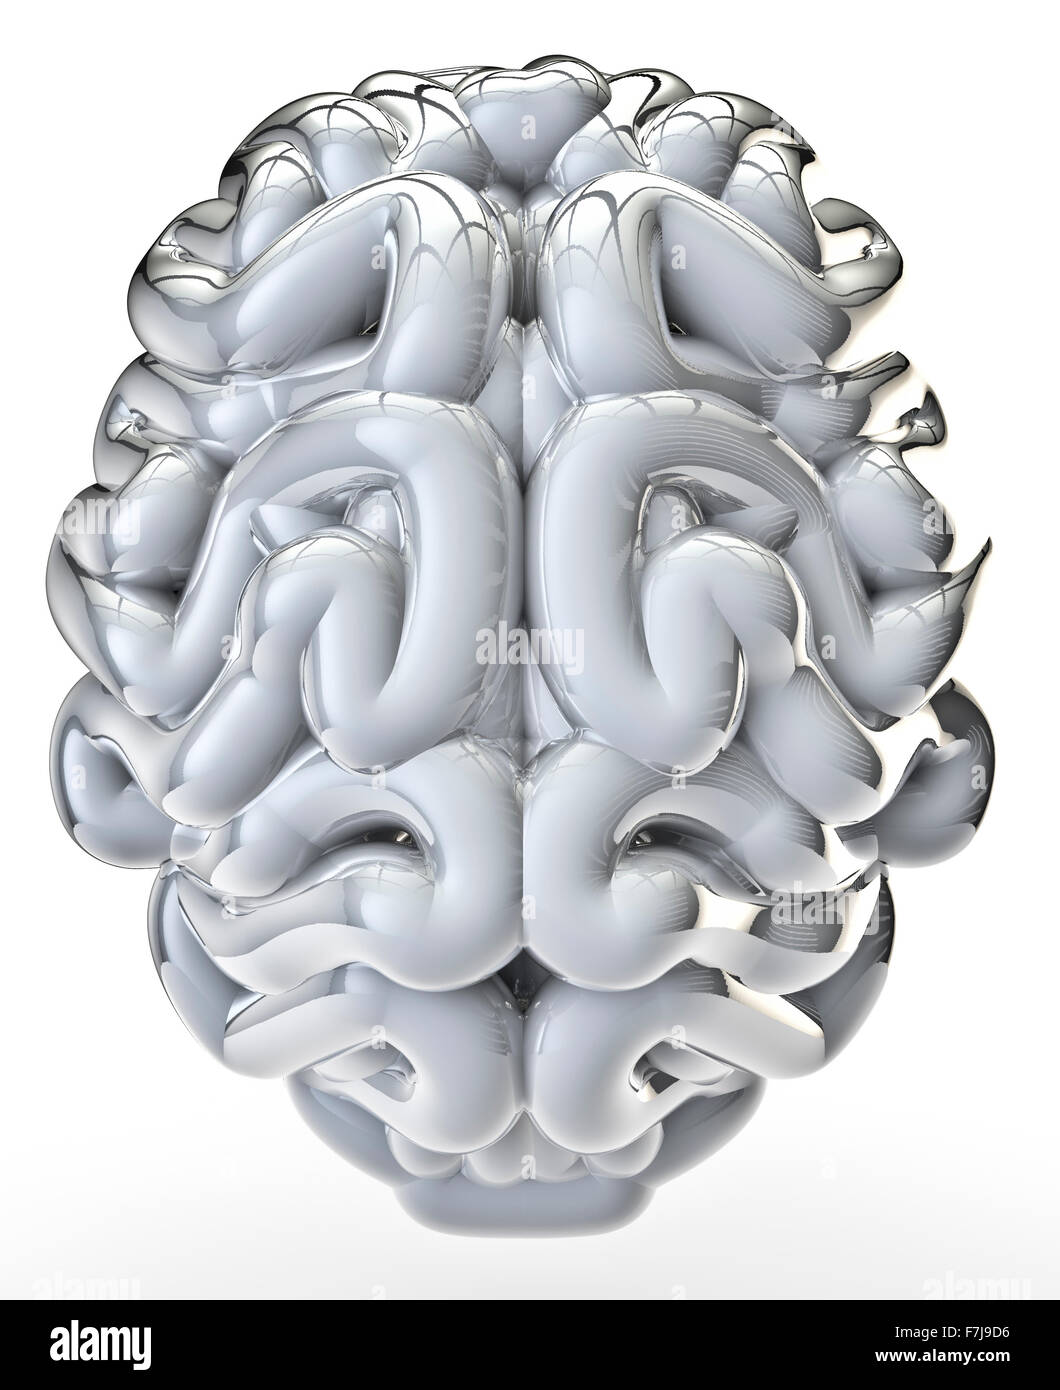 White glossy brain / 3D render of brain isolated on white - Stock Image